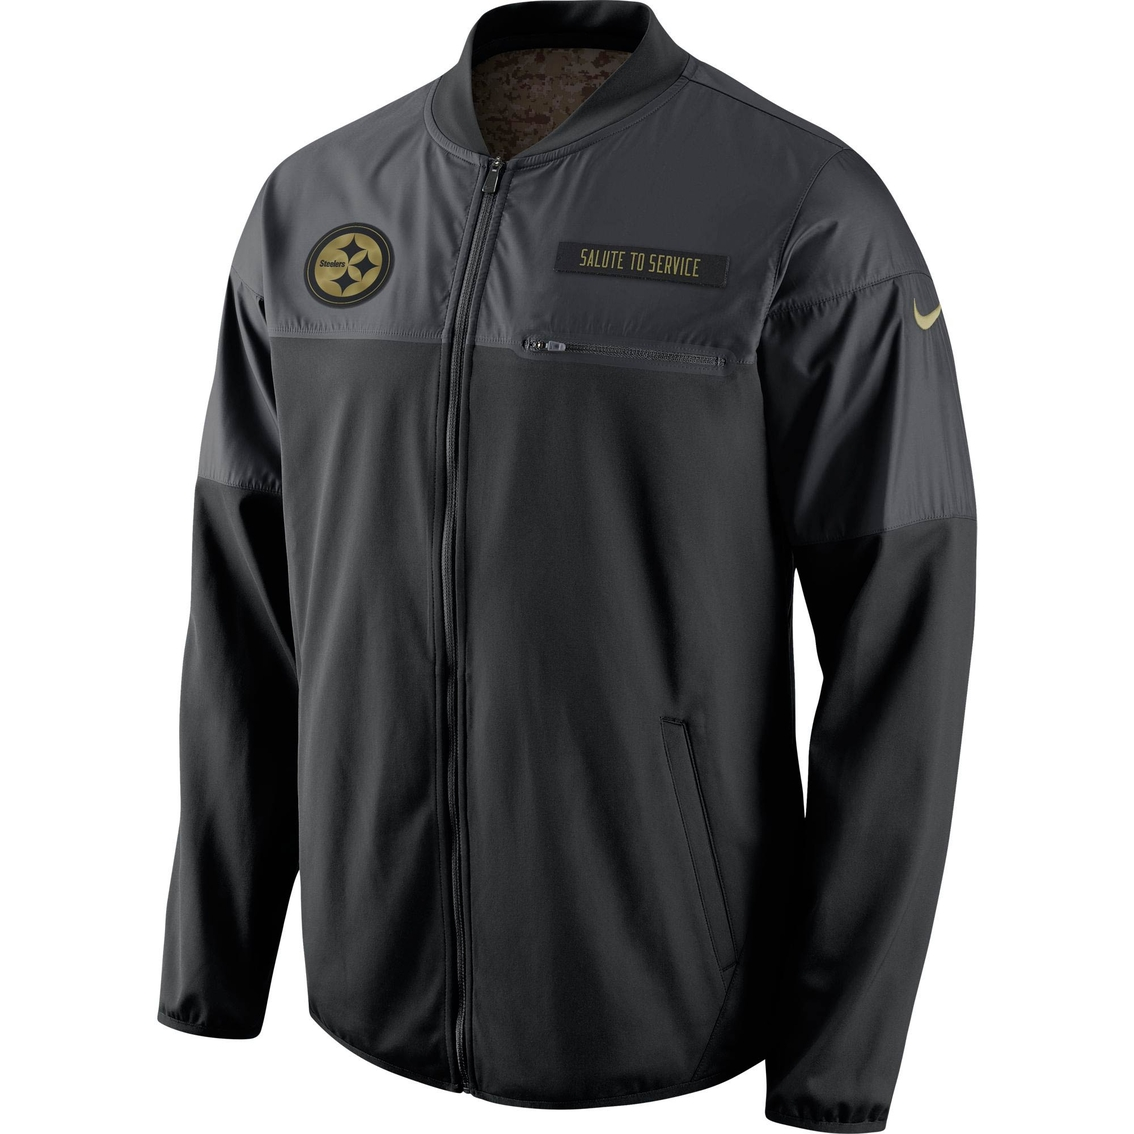 promo code 5c061 8ee3f Nike Nfl Pittsburgh Steelers Salute To Service Jacket ...